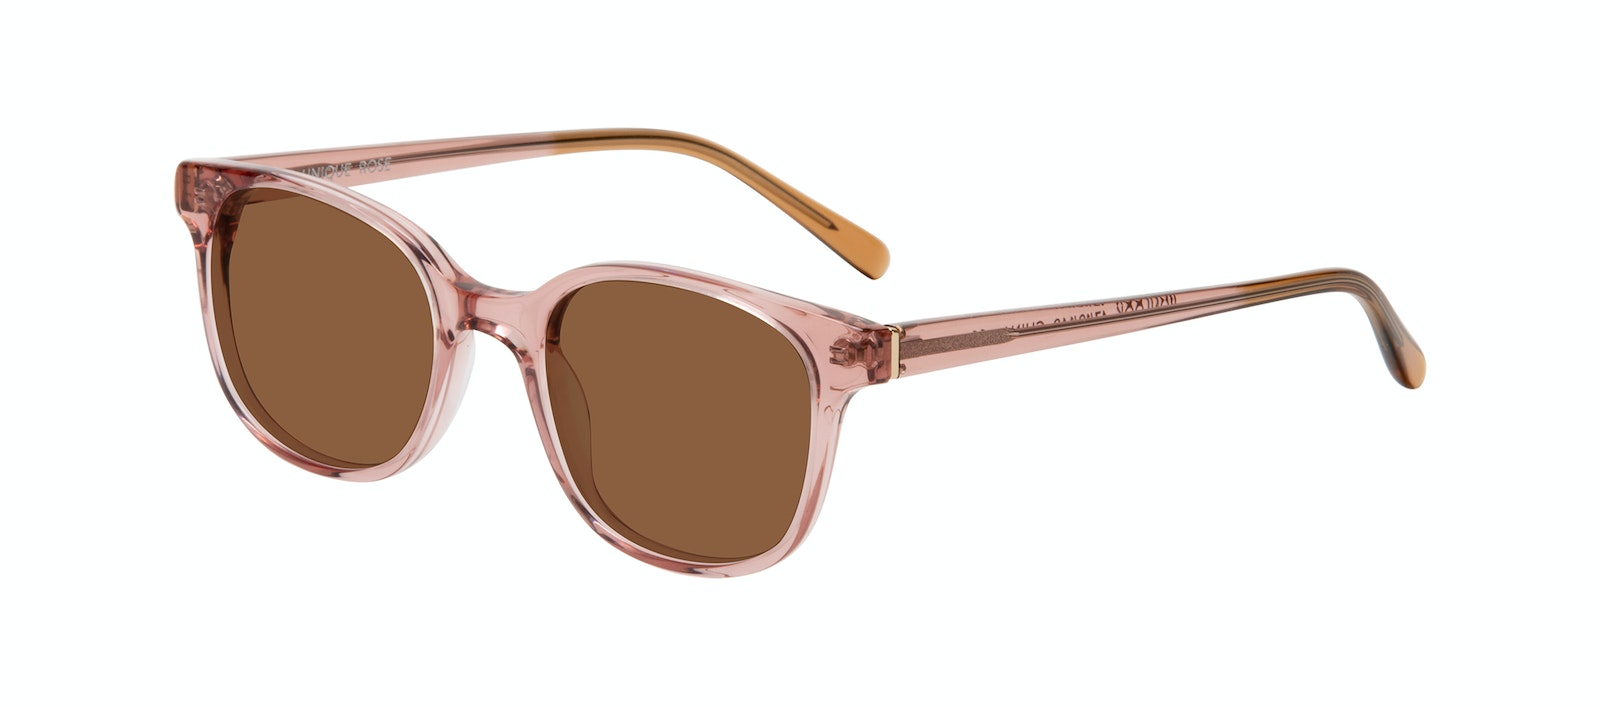 Affordable Fashion Glasses Square Sunglasses Women Unique Rose Tilt